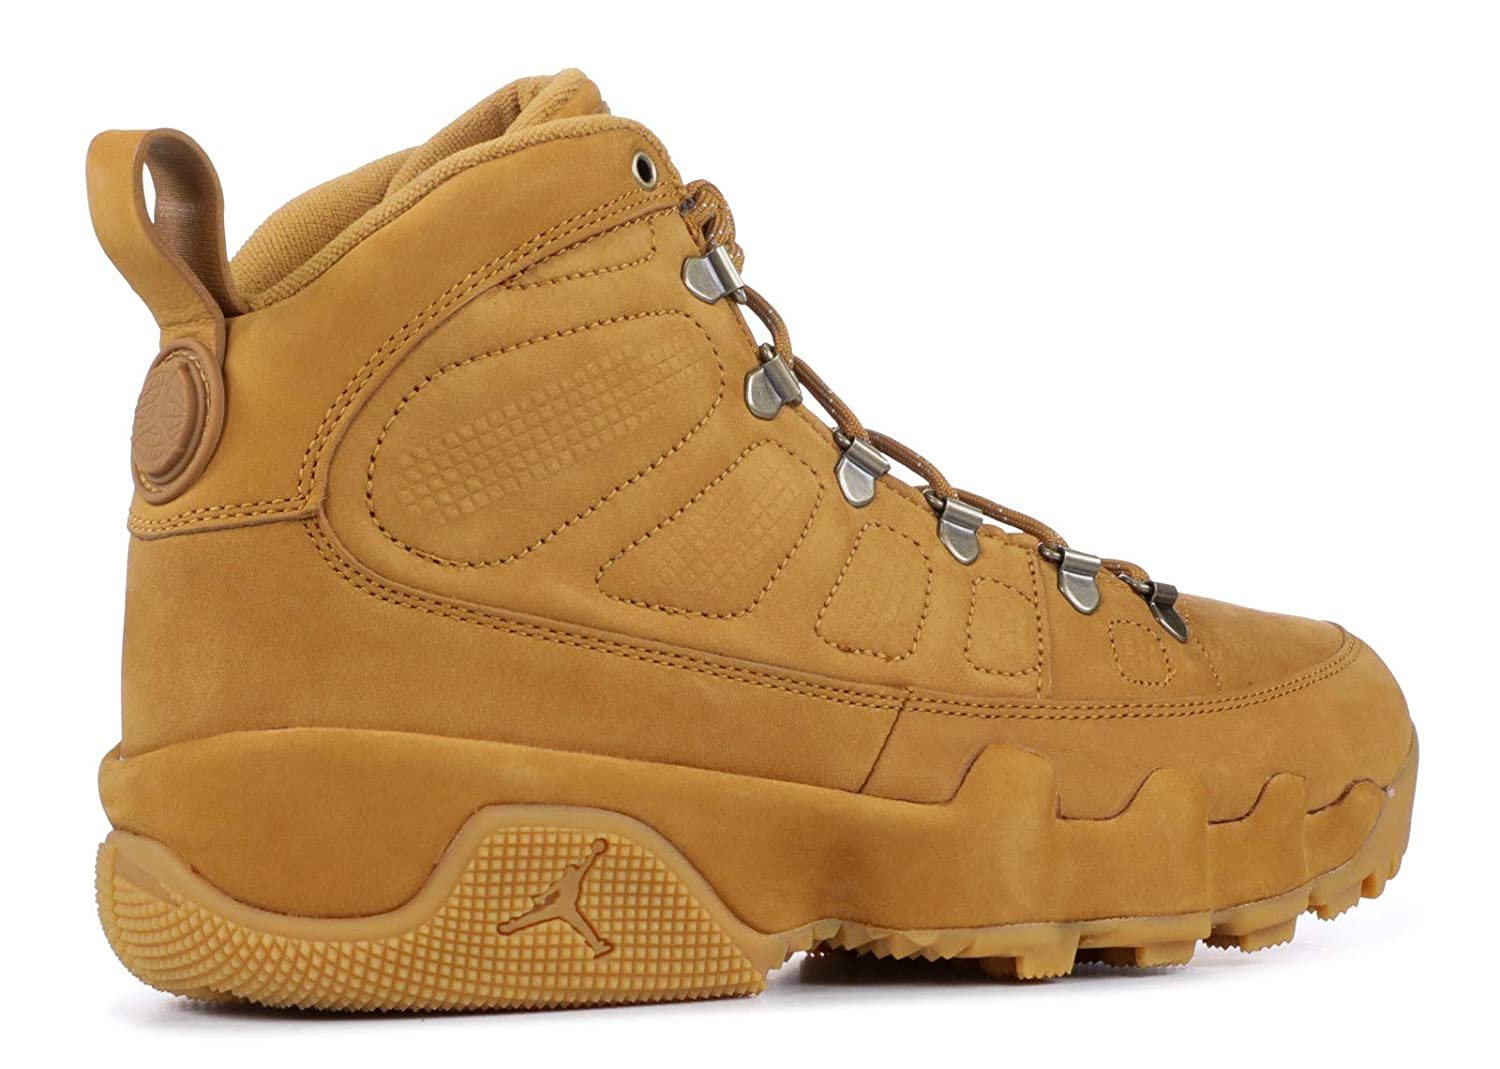 0c8255f855390 Nike Men's Air Jordan 9 Retro Boot NRG Wheat/Brown AR4491-700